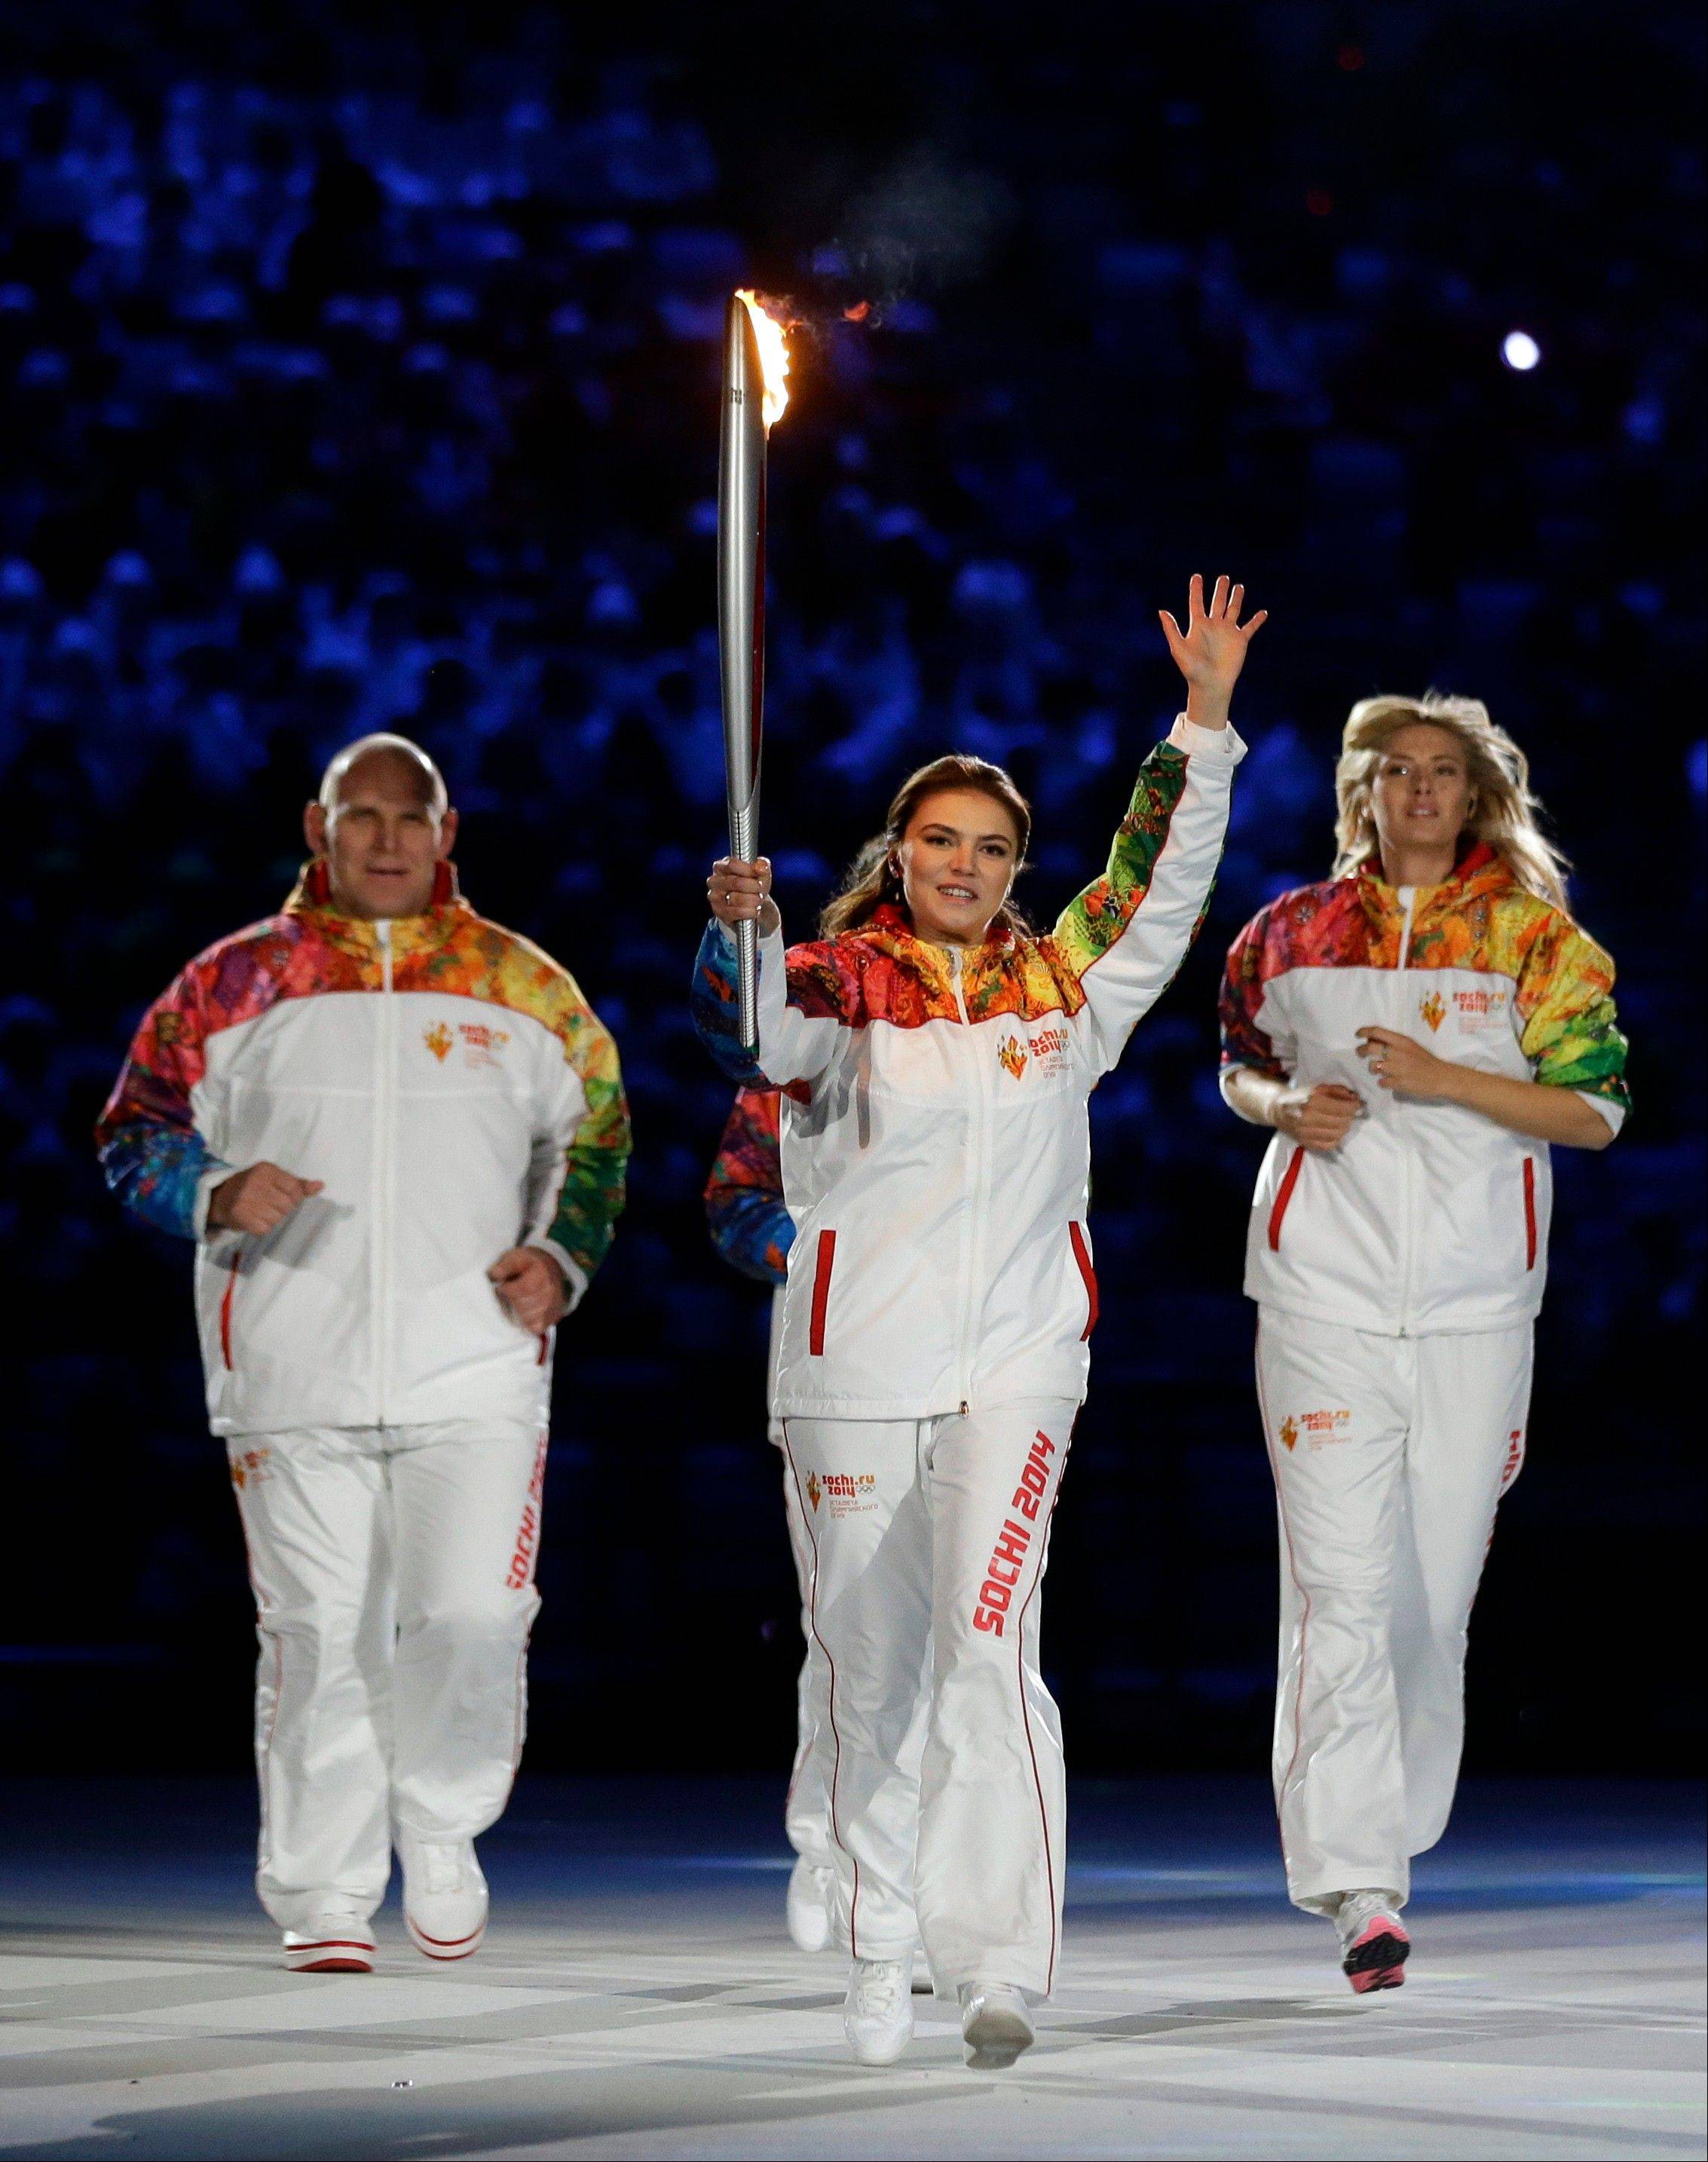 Alina Kabaeva holds the torch flanked by Maria Sharapova, right, and Alexandr Karelin during the opening ceremony .